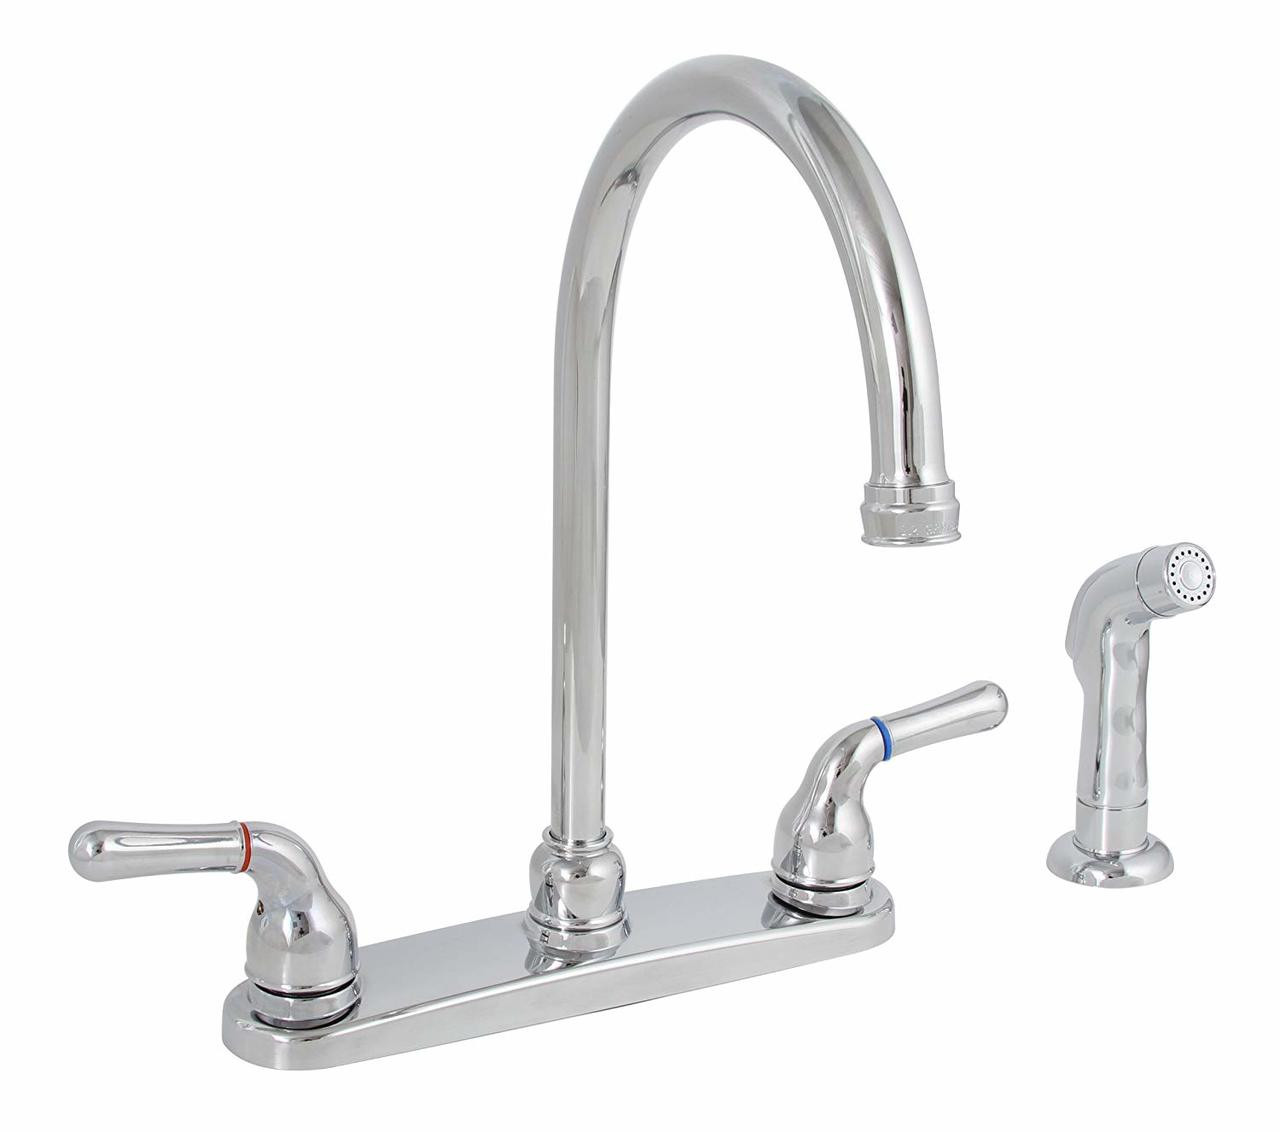 Premier Sanibel Lead-Free Two-Handle Kitchen Faucet with Matching Spray in  Chrome